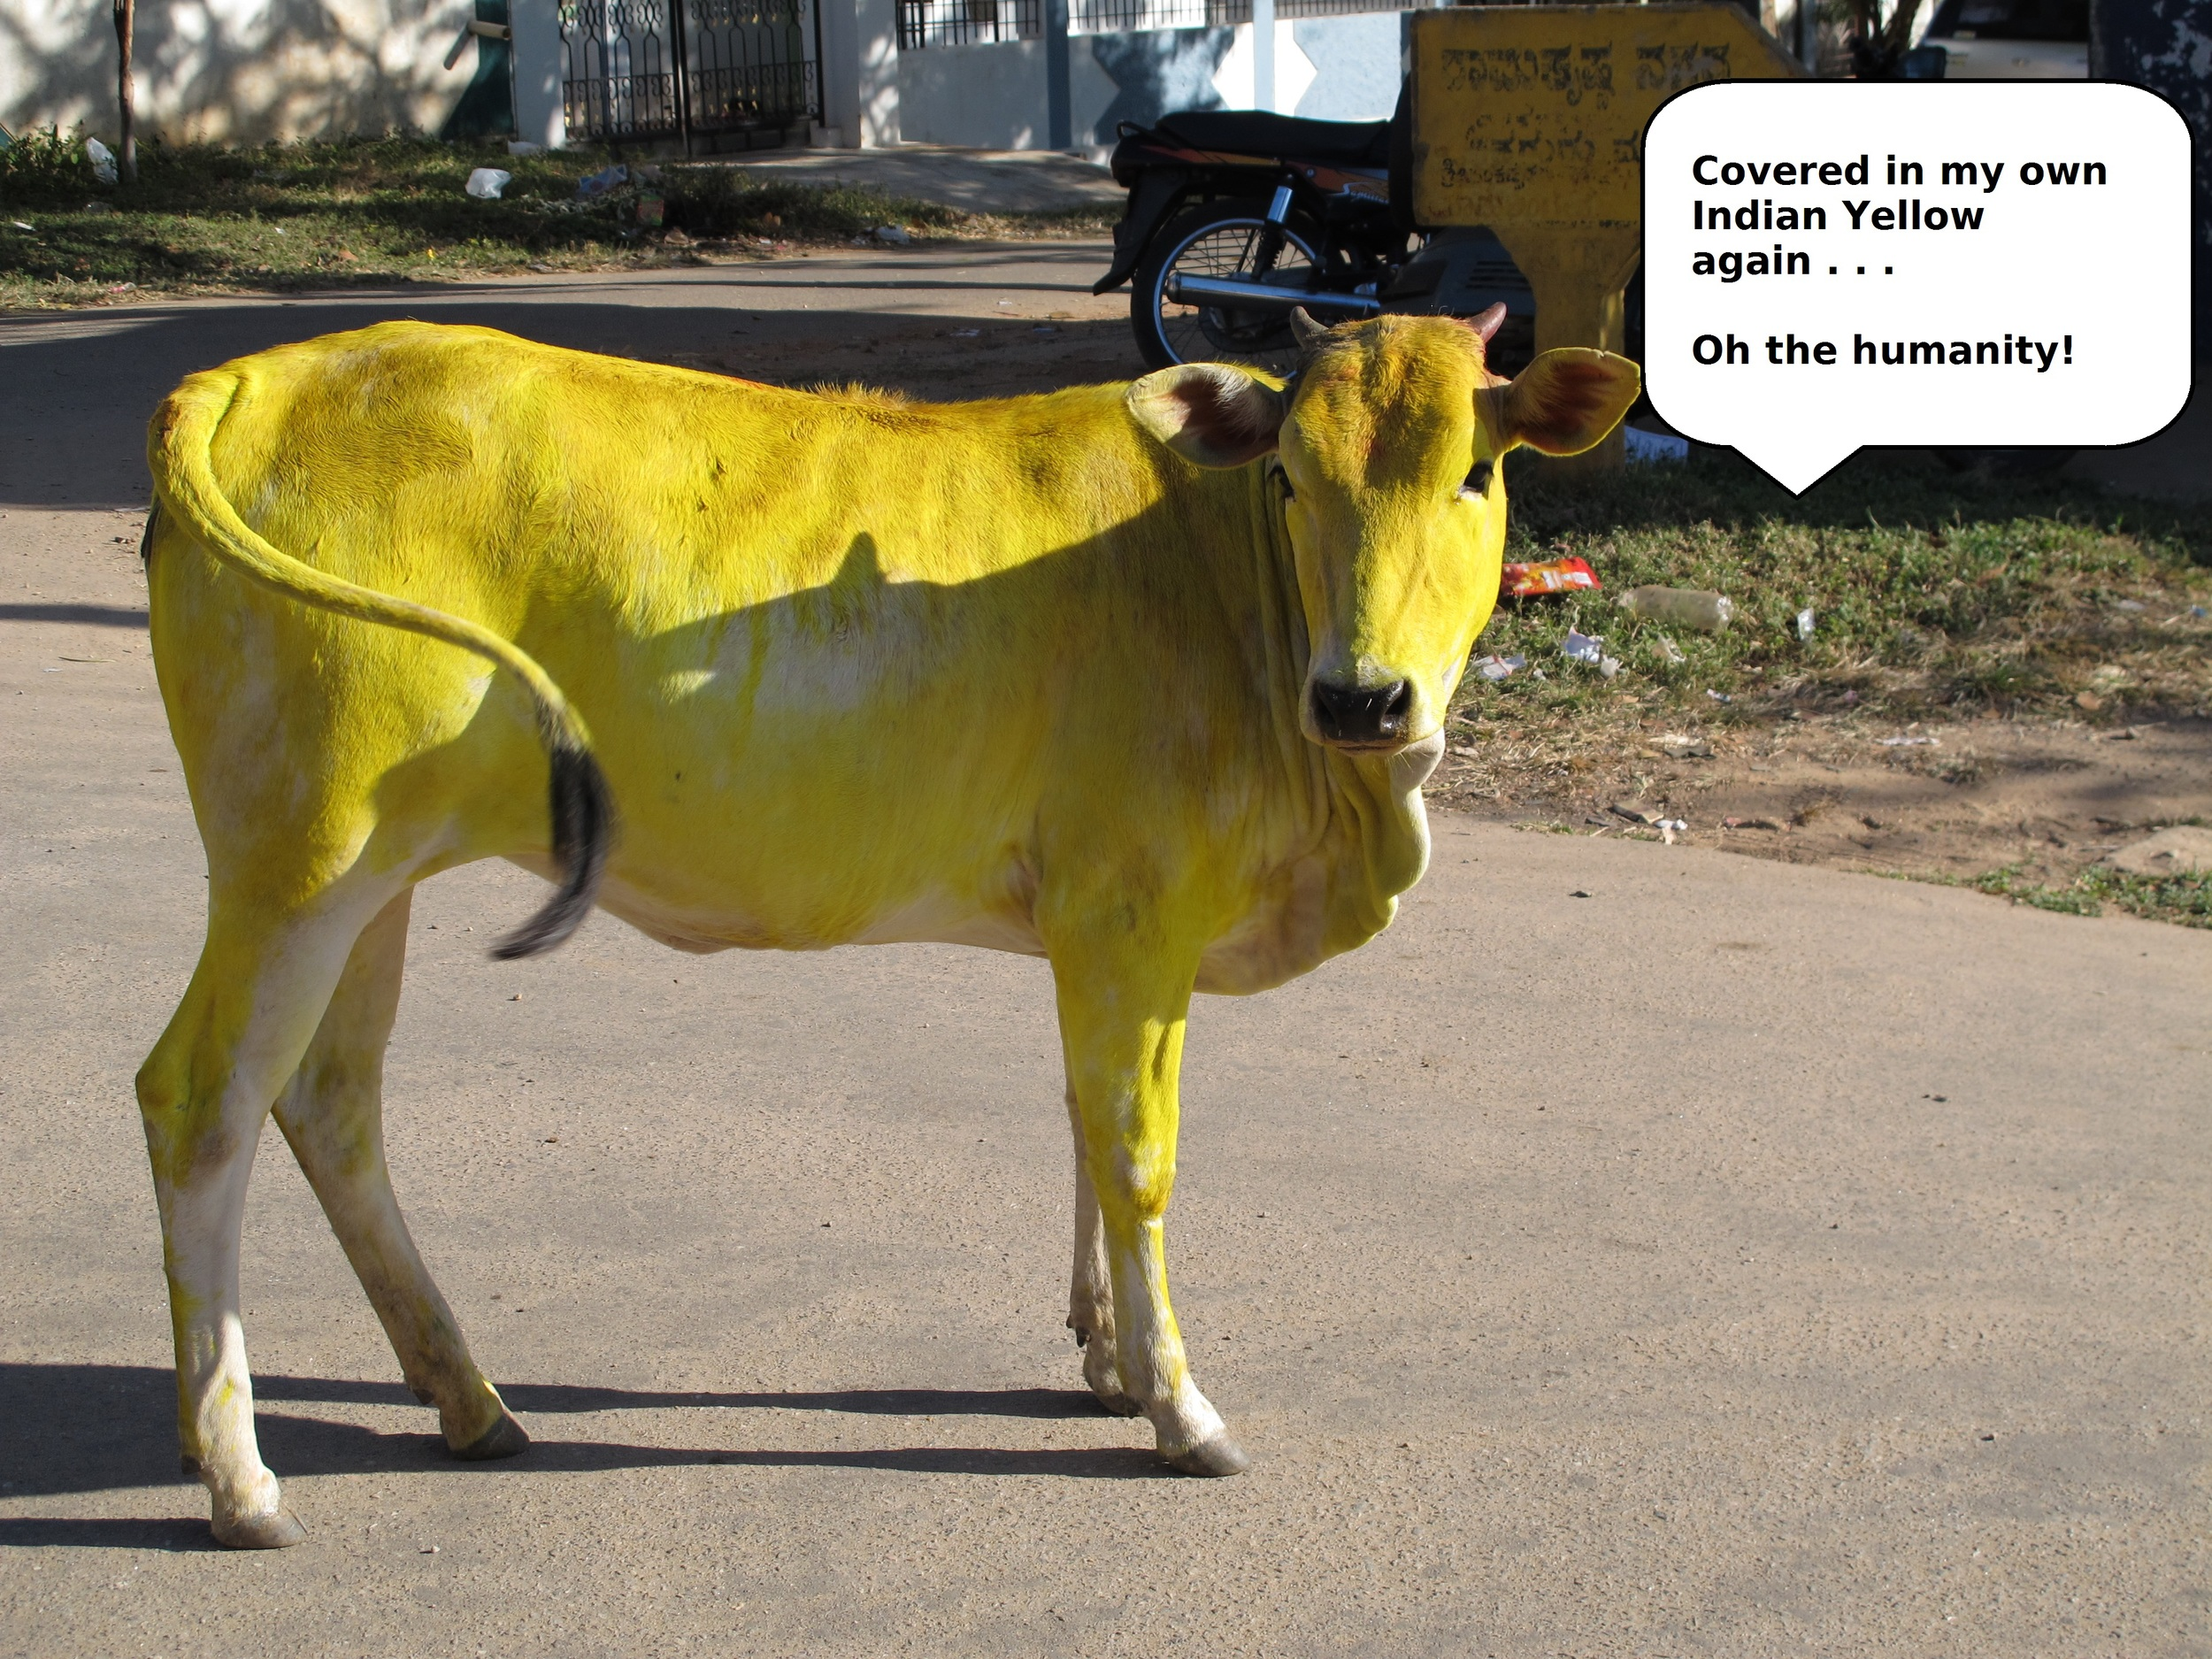 A Cow Covered in Synthetic Indian Yellow Pigment